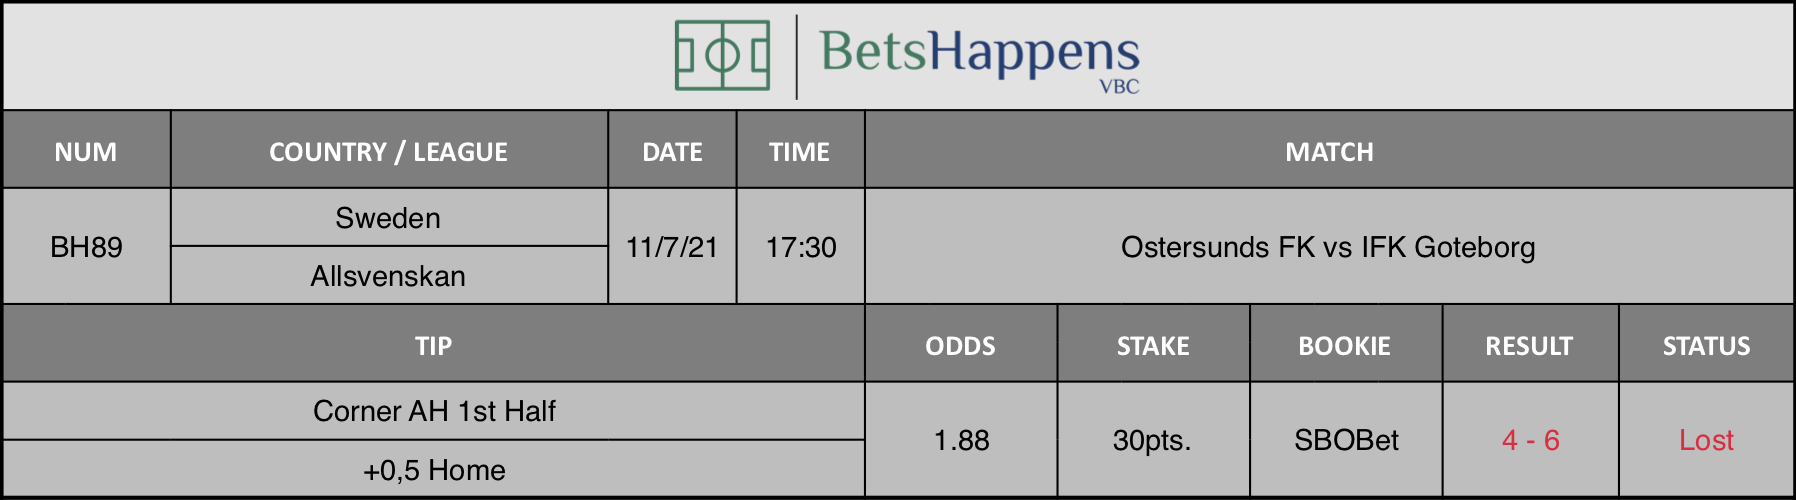 Results of our advice for the Ostersunds FK vs IFK Goteborg match in which Corner AH 1st Half +0,5 Home is recommended.